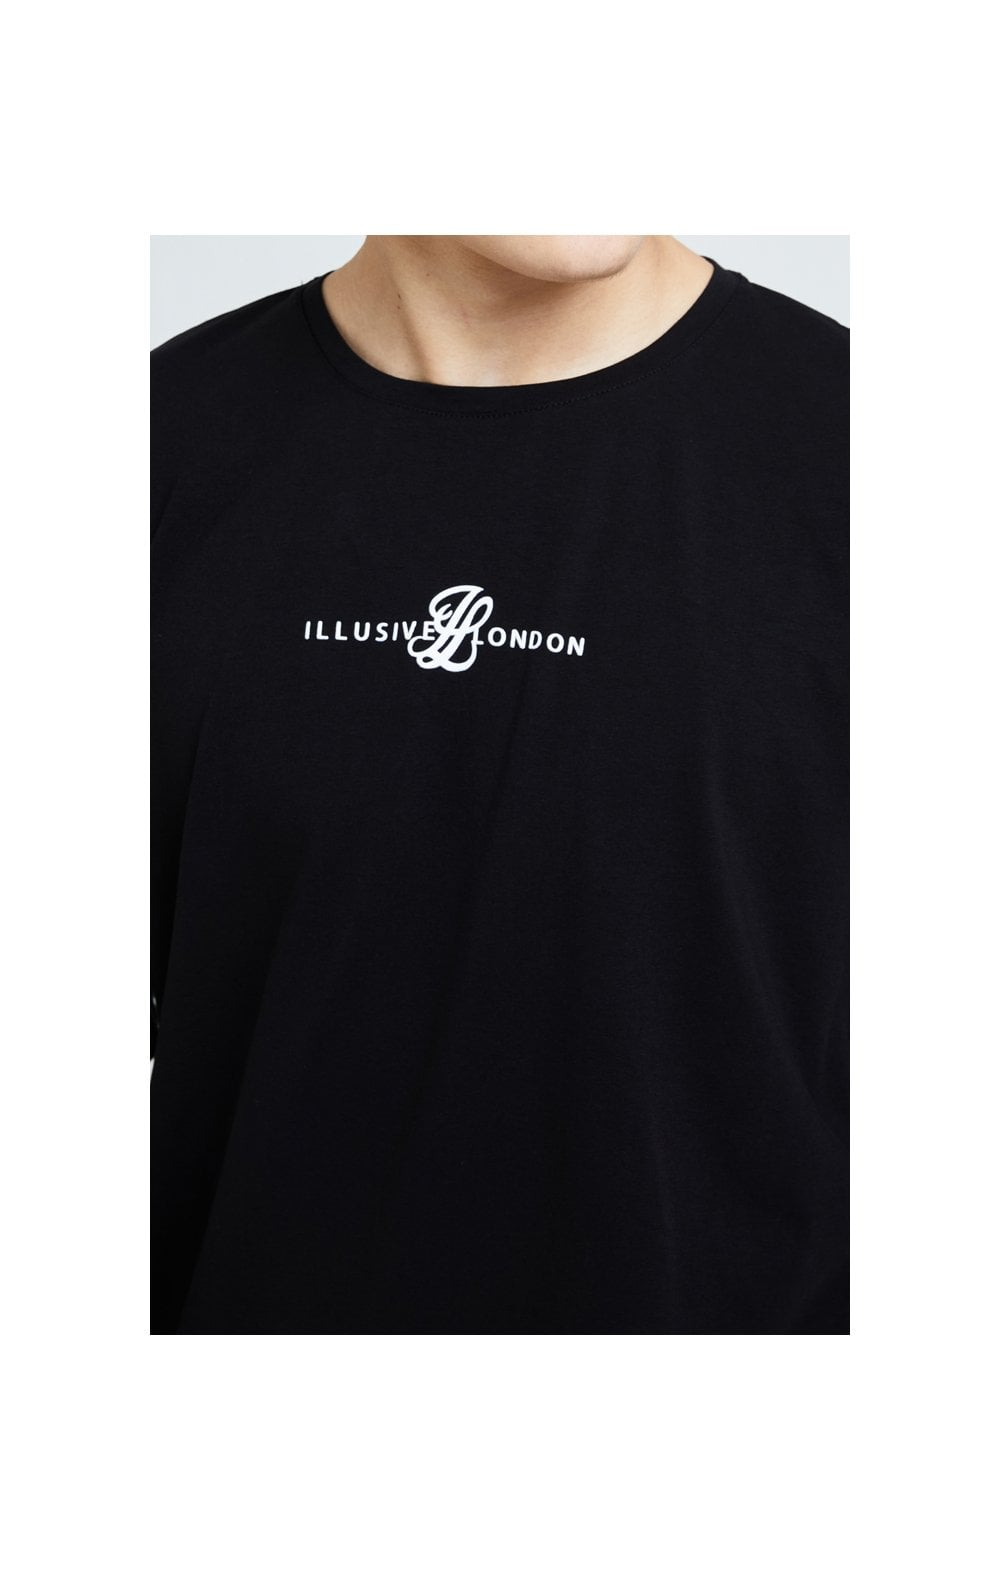 Illusive London Dual L/S Tee - Black (1)